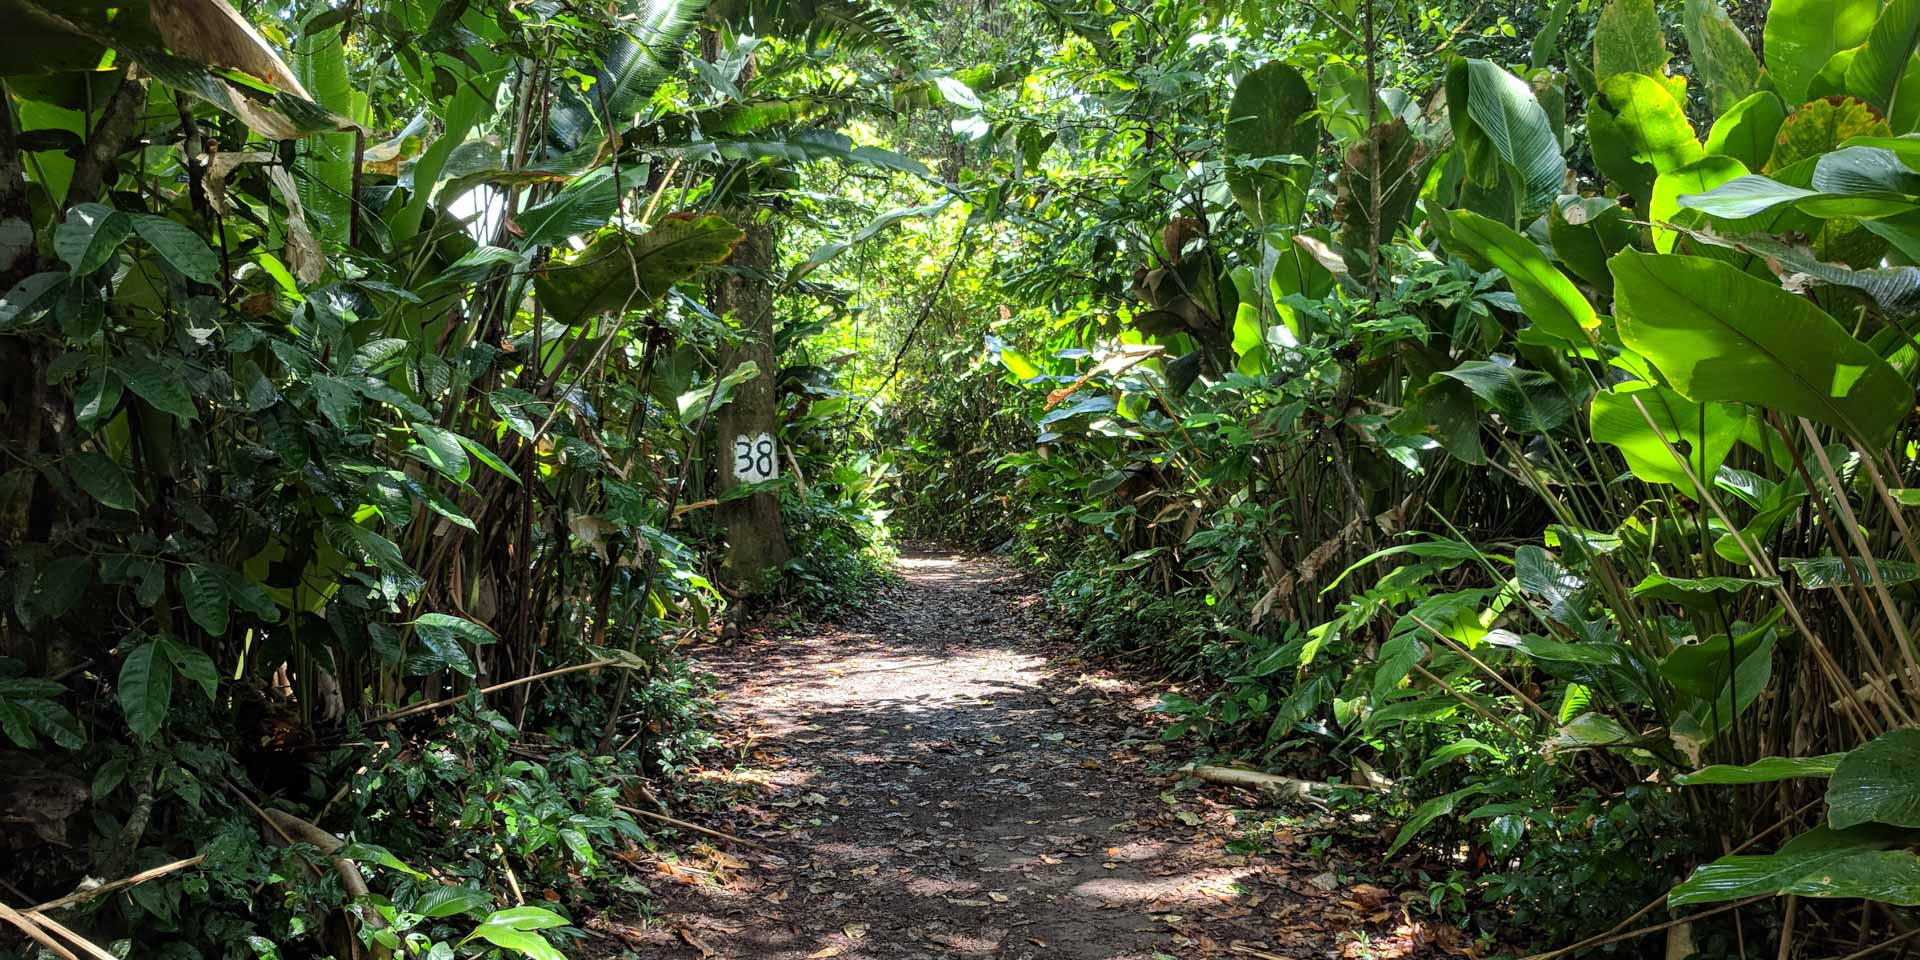 Hiking trail in the Tortuguero National Park